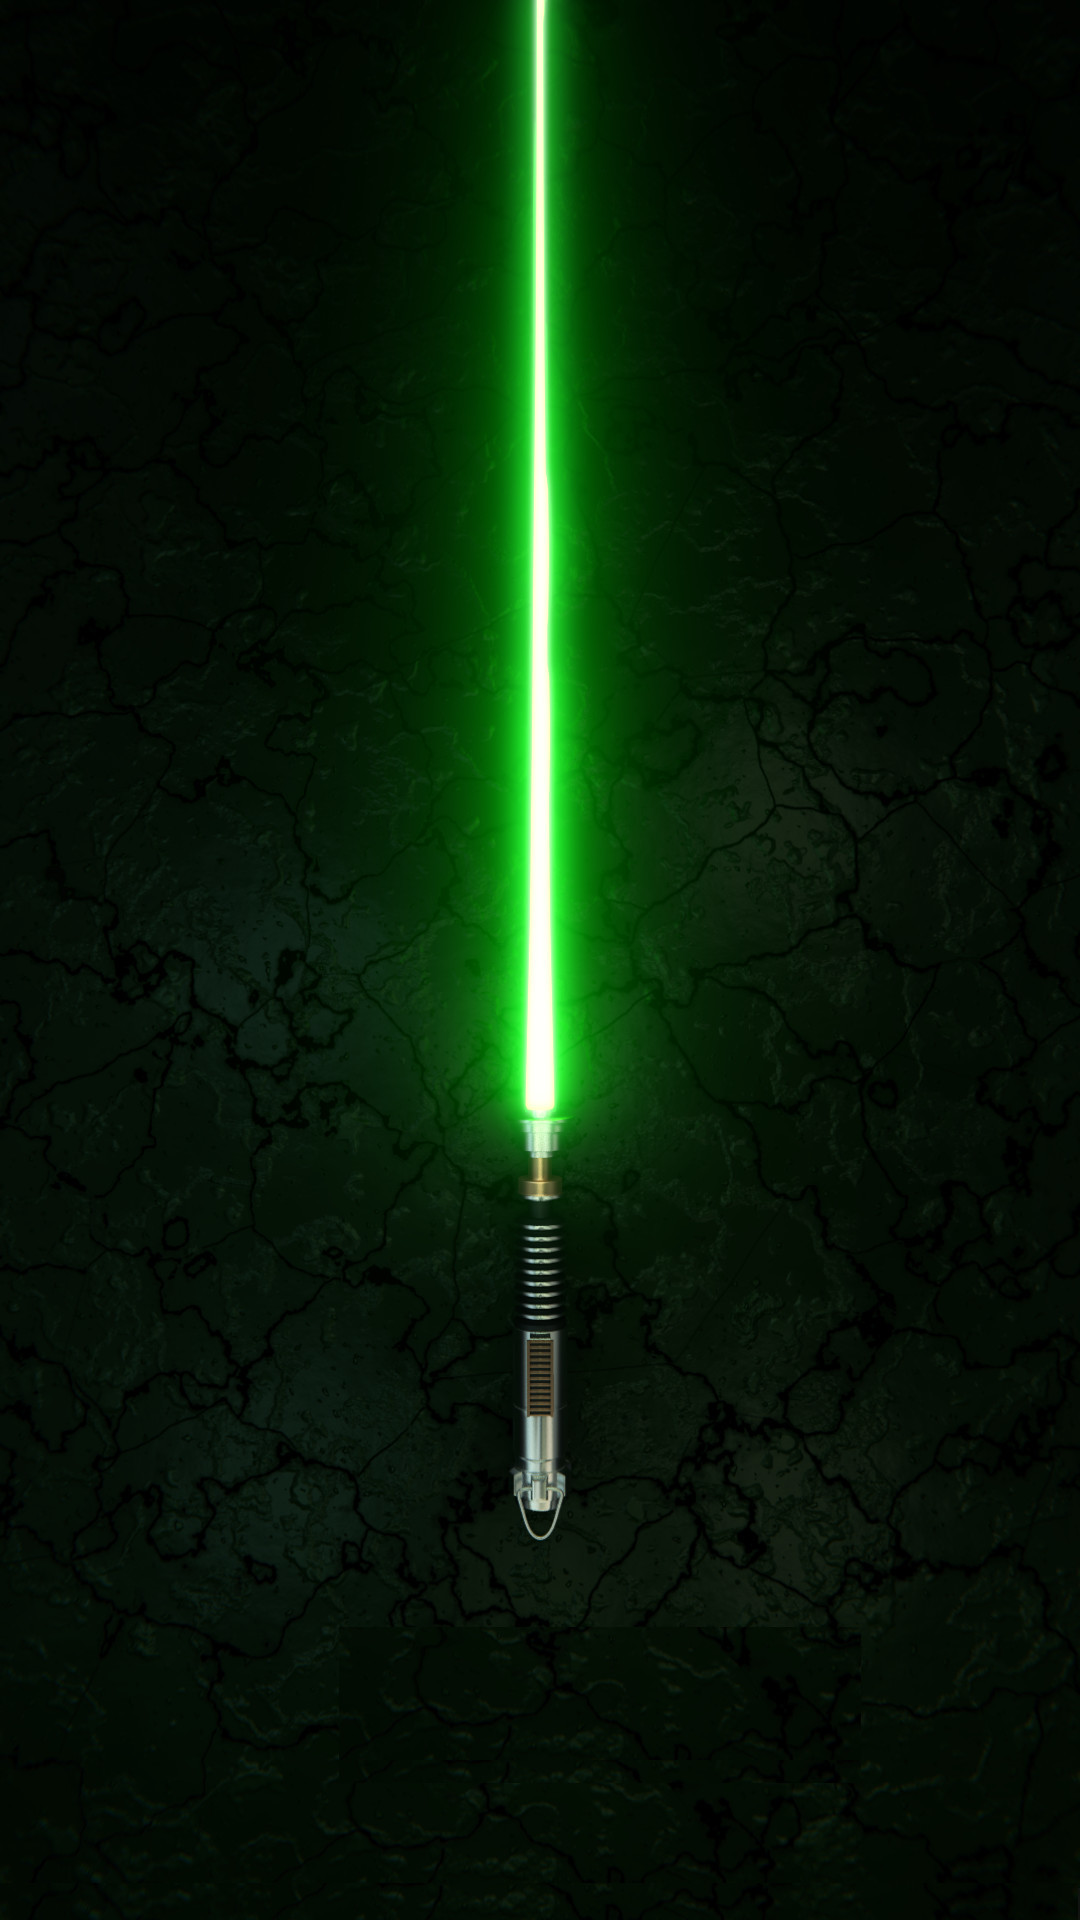 1080x1920  Star Wars Lightsaber - Tap to see more exciting Star Wars  wallpaper! @mobile9